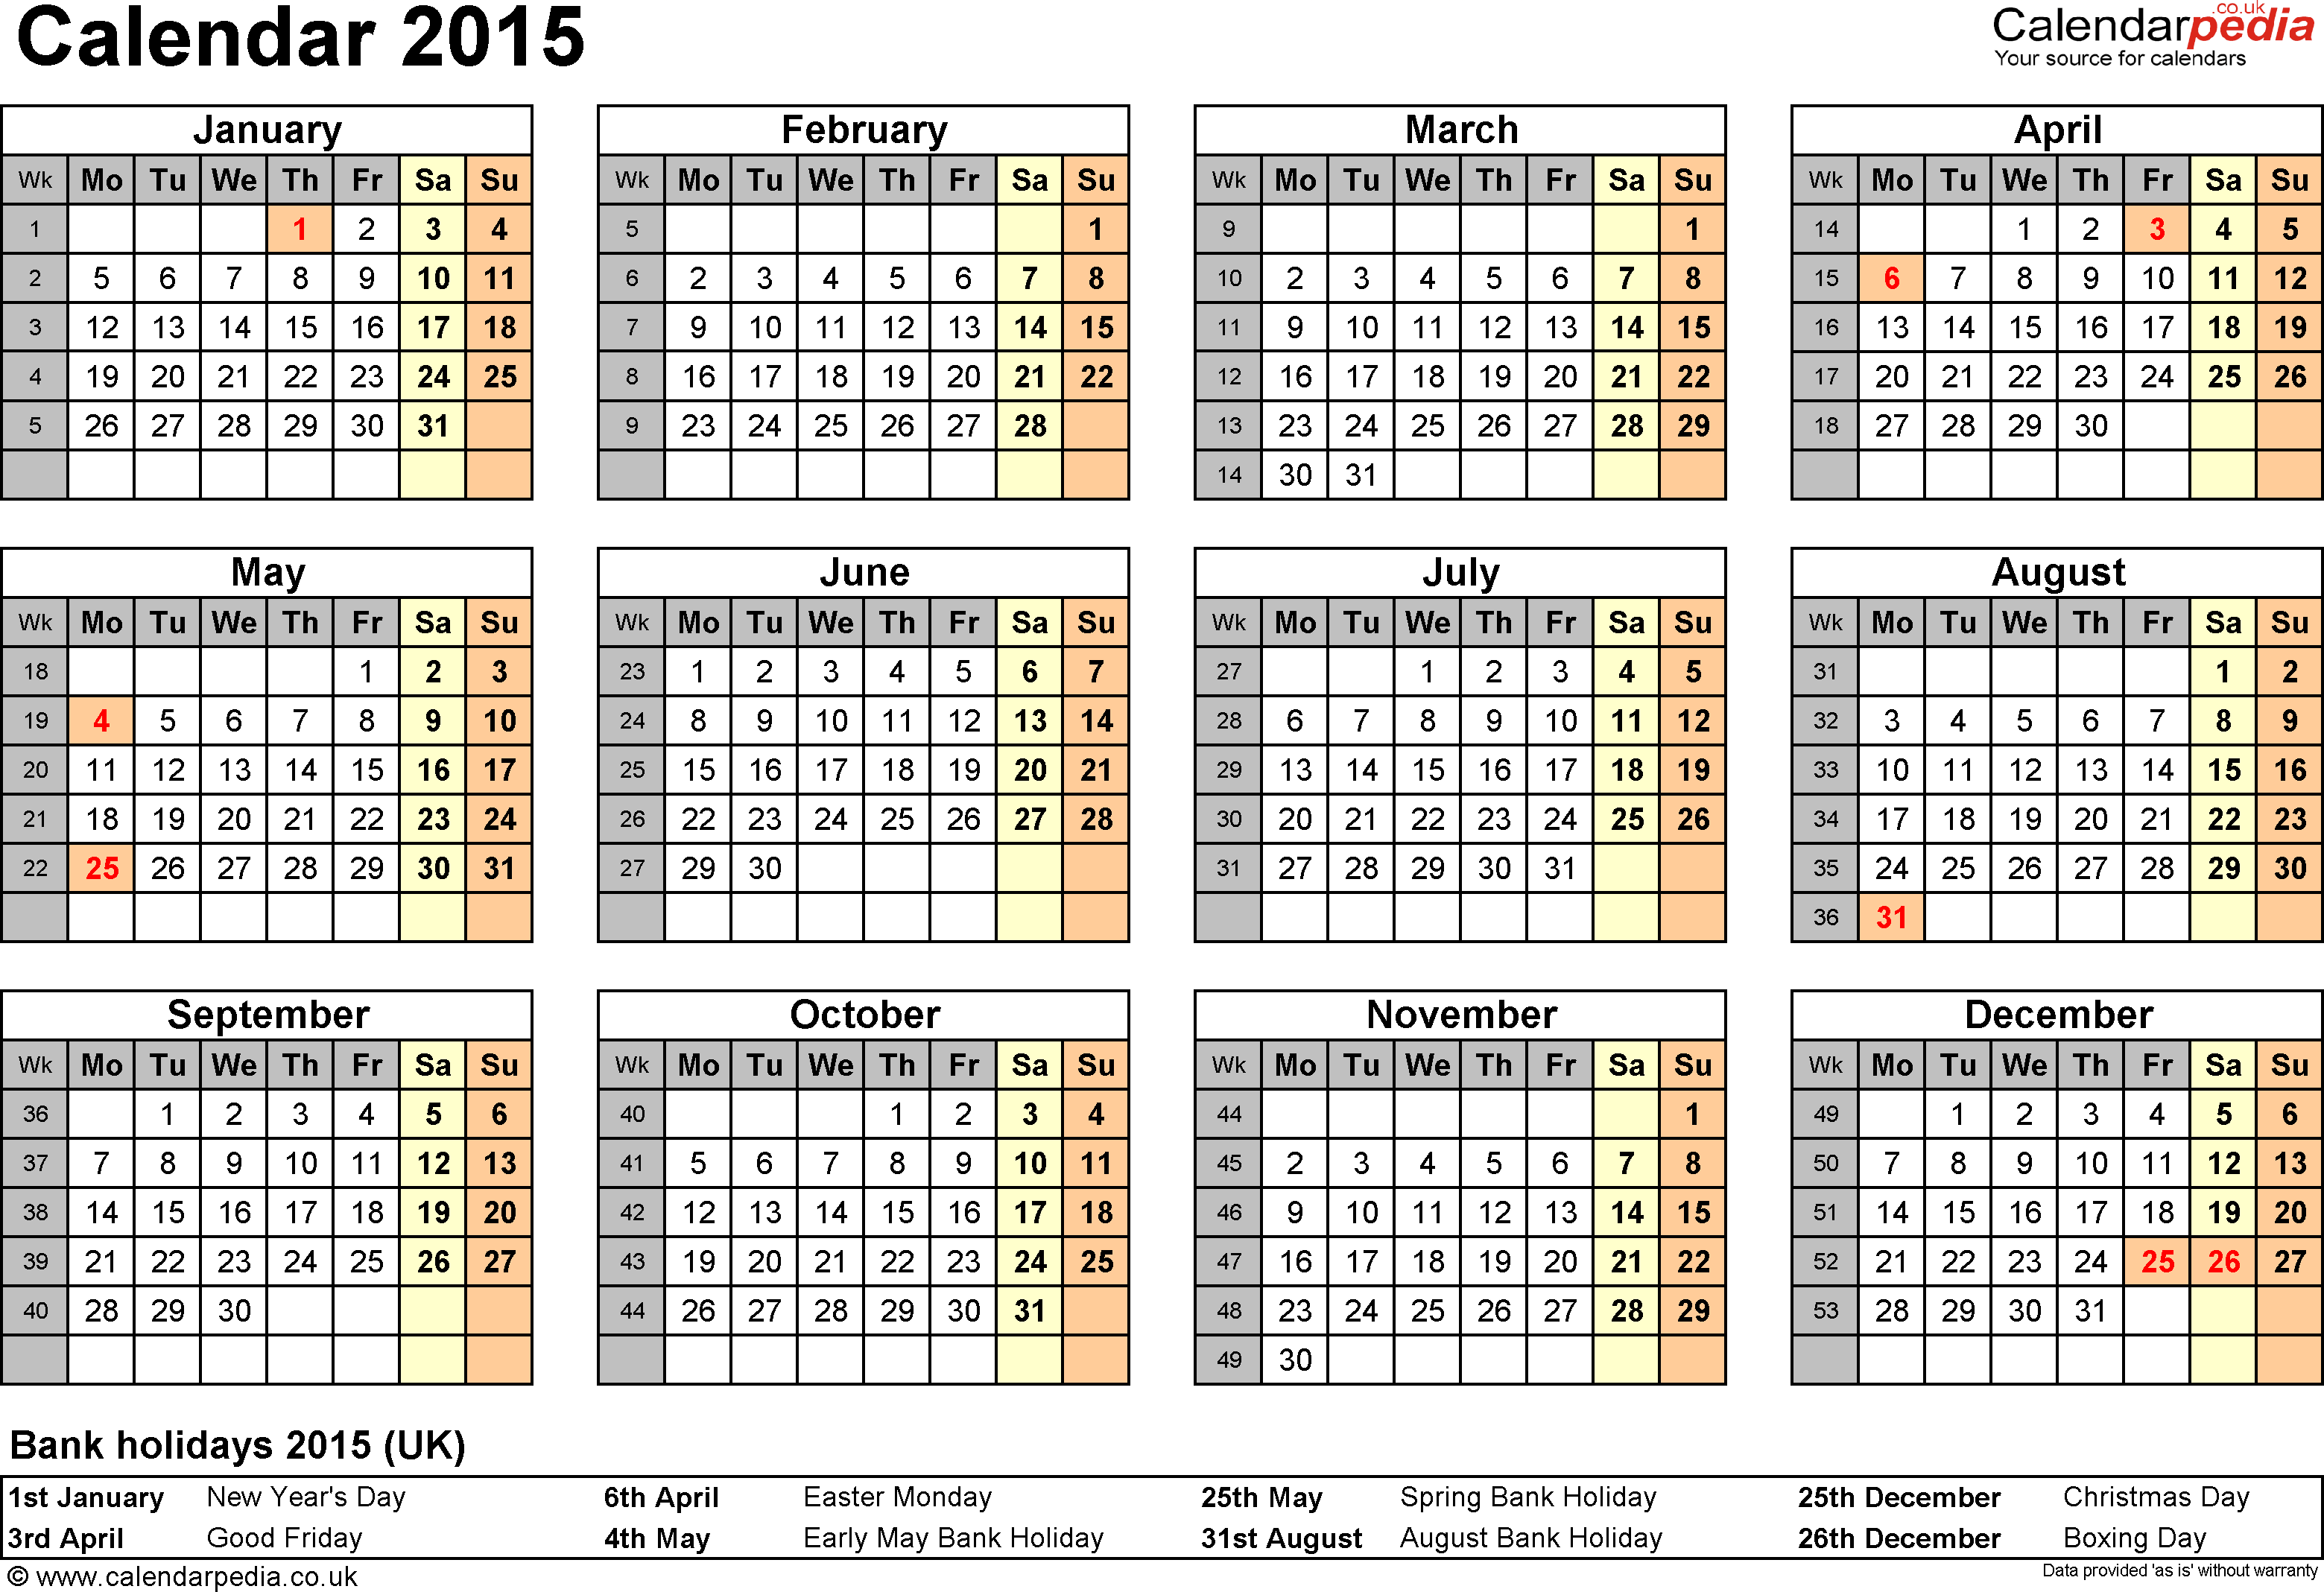 Printable 2015 Yearly Calendar Template Excel : 2015年カレンダー a3 : カレンダー